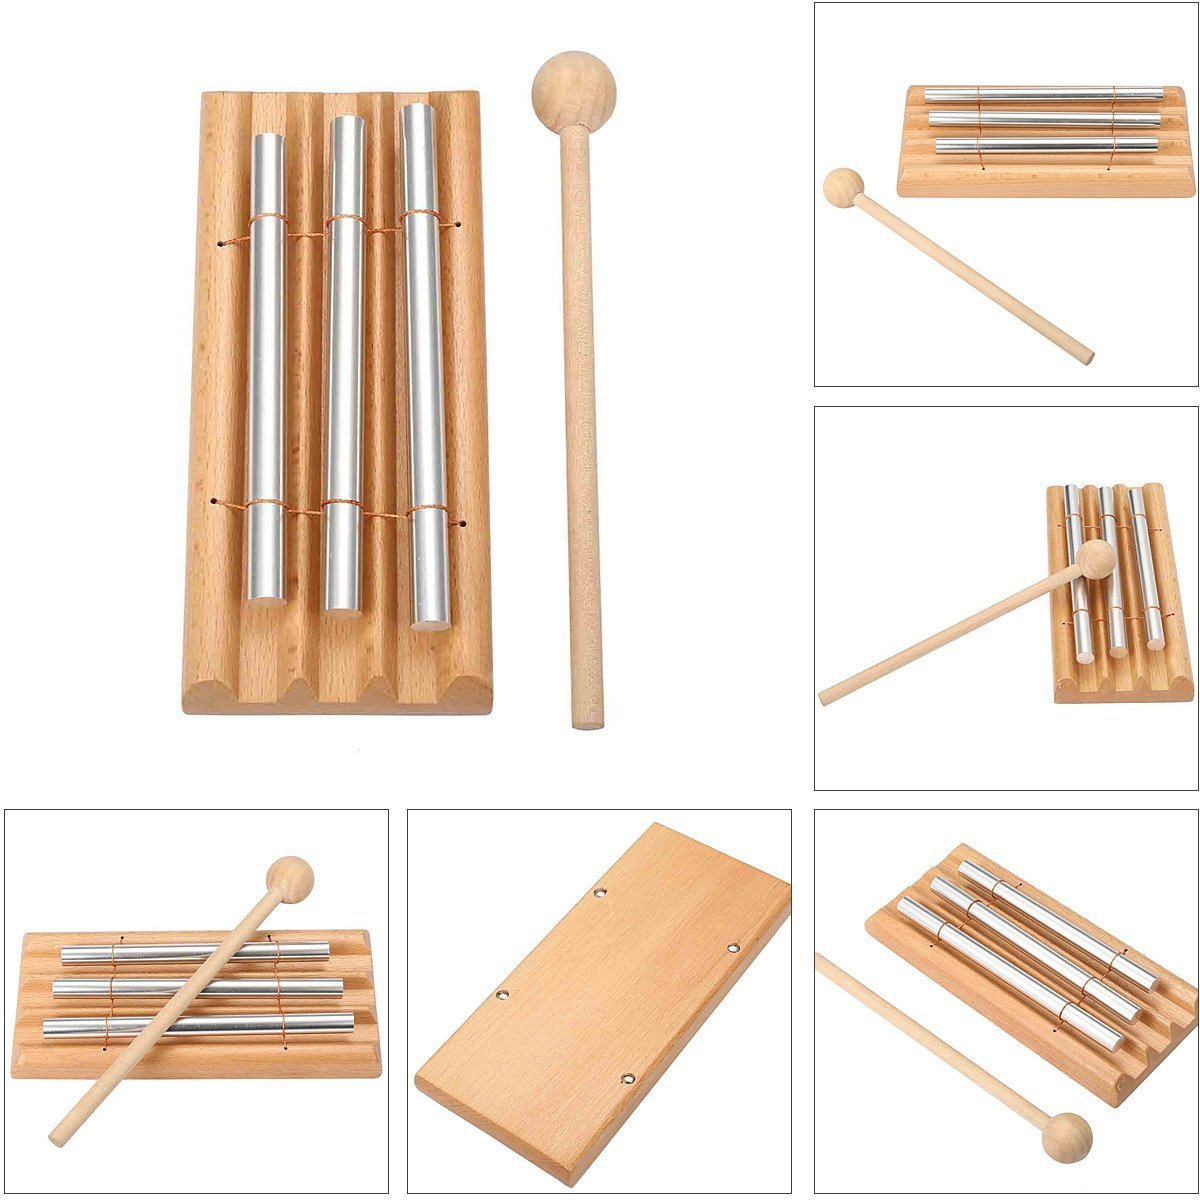 Meditation Chime, MOHOO Energy Chimes Trio Chime Three Tone Percussion Instrument with Mallet MOHOOkkSFWxcPf